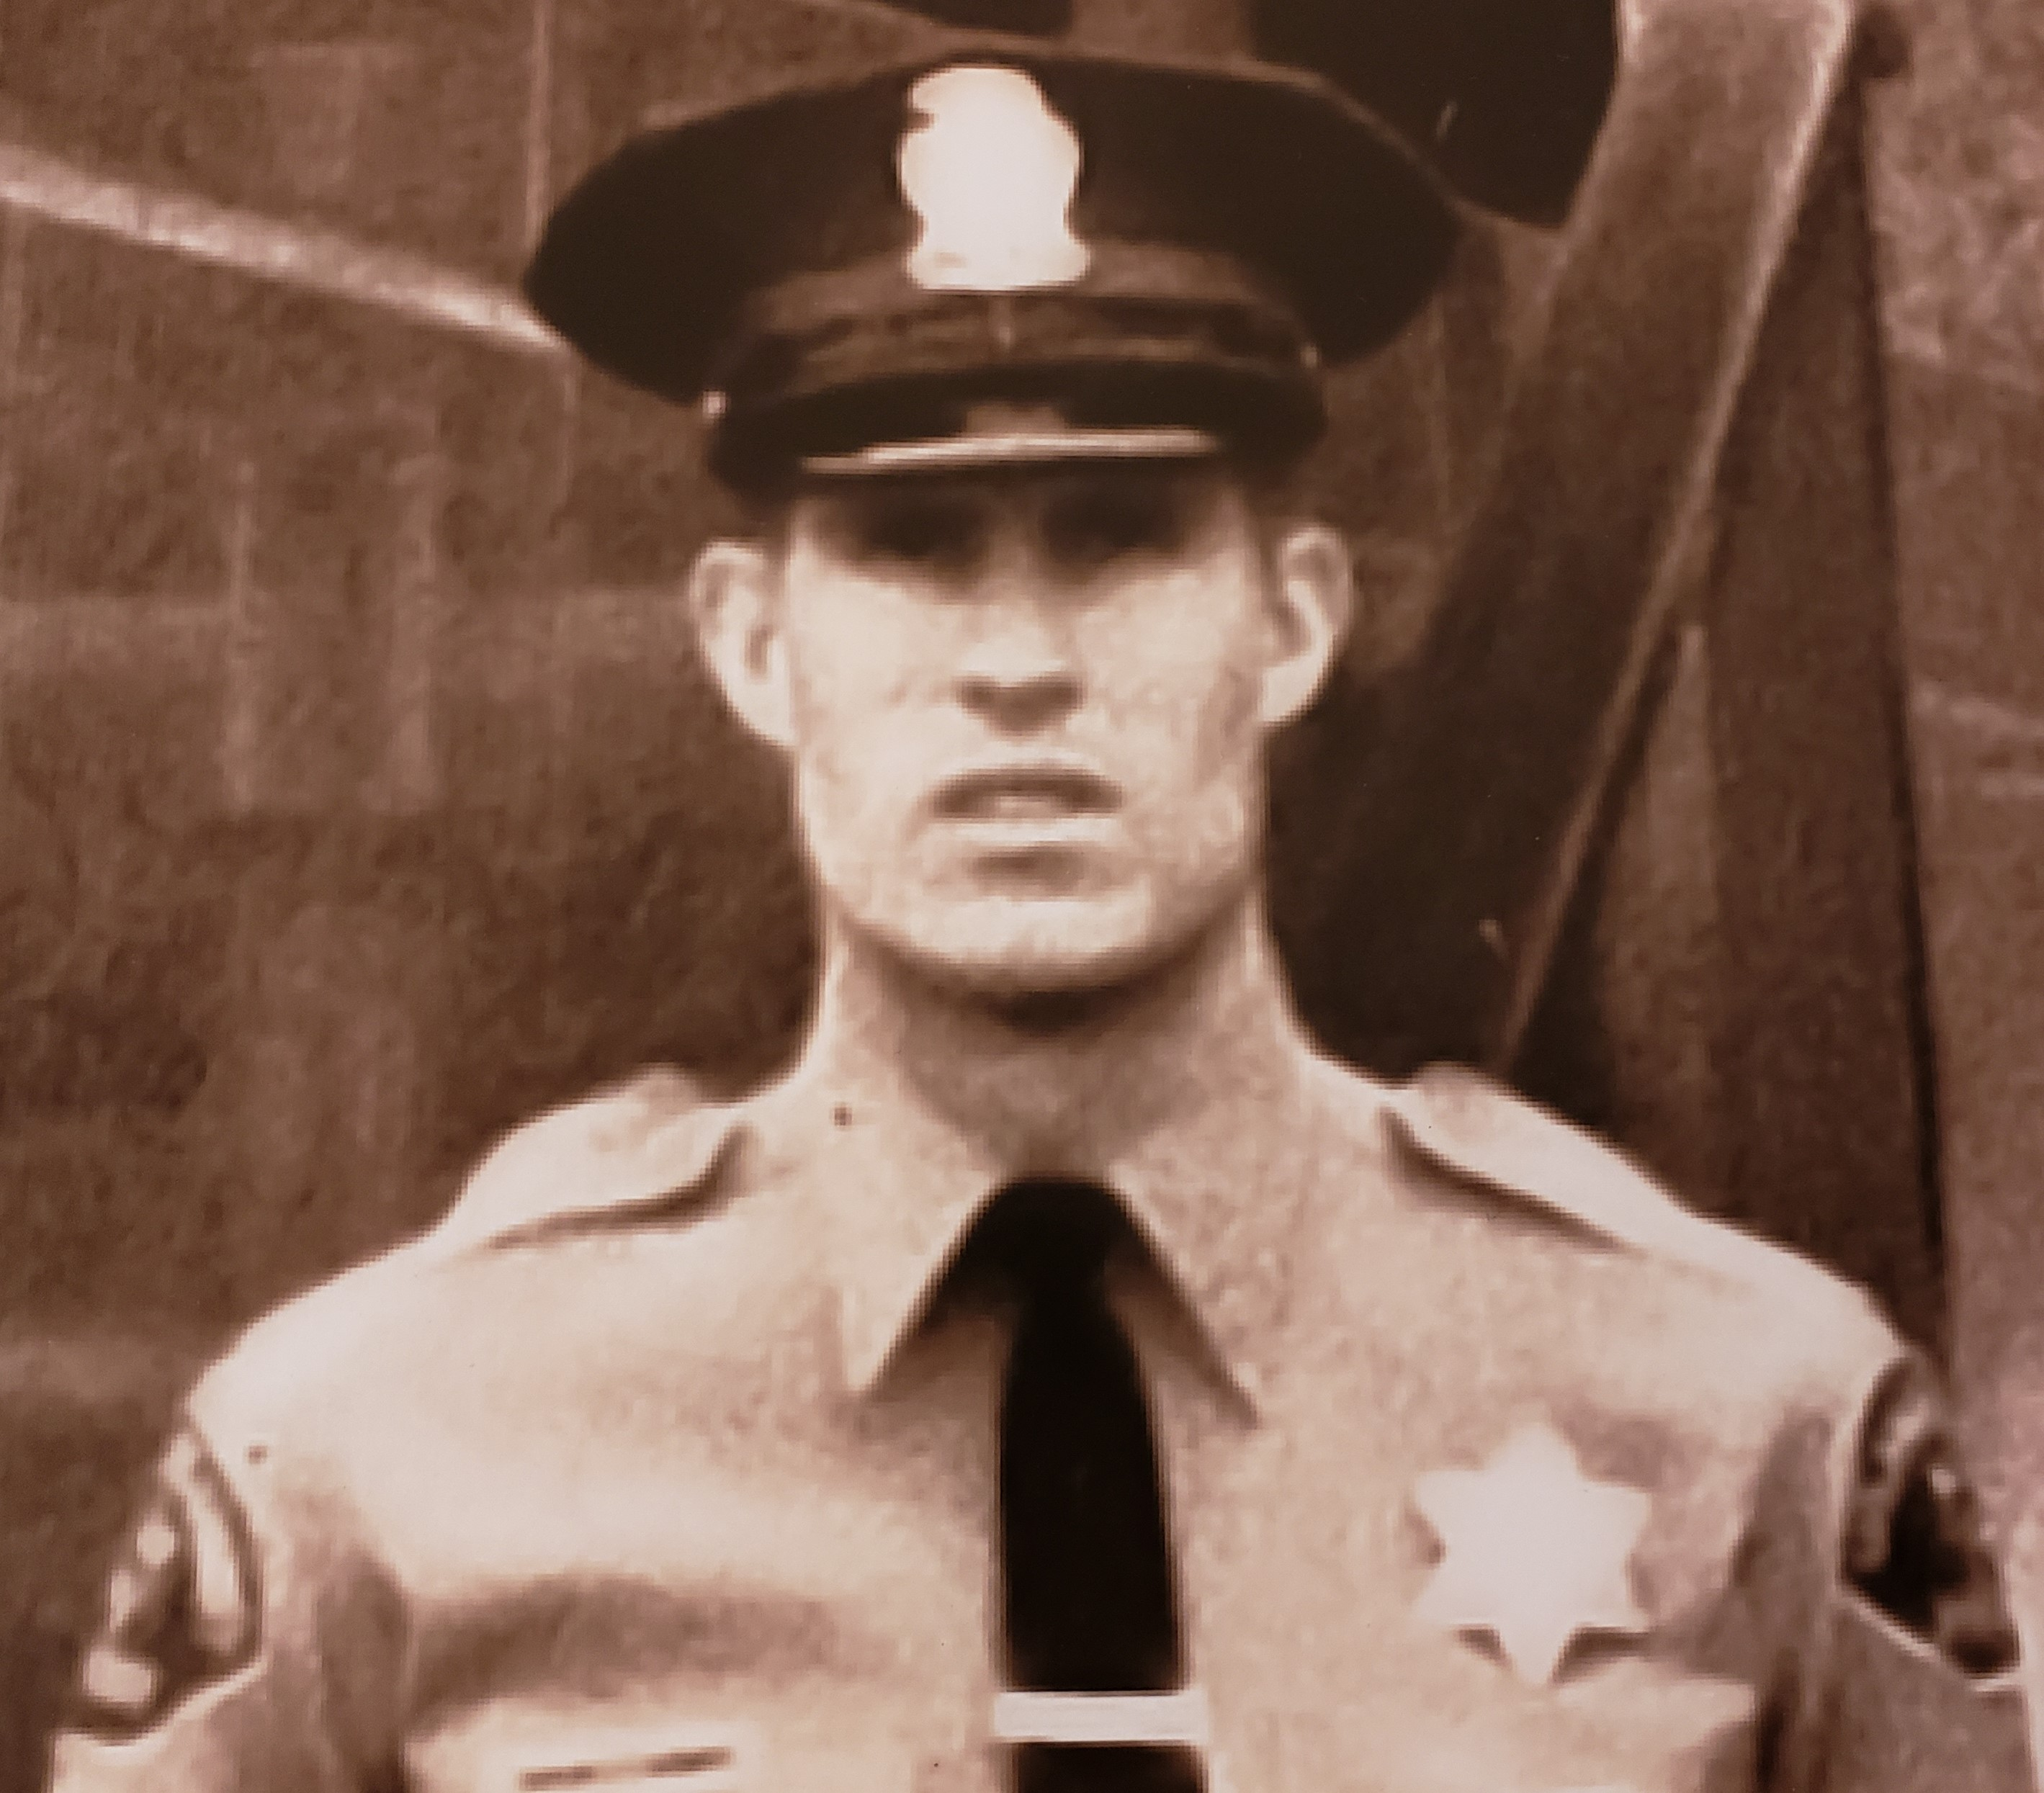 Deputy Sheriff Charles O. Ley | Los Angeles County Sheriff's Department, California